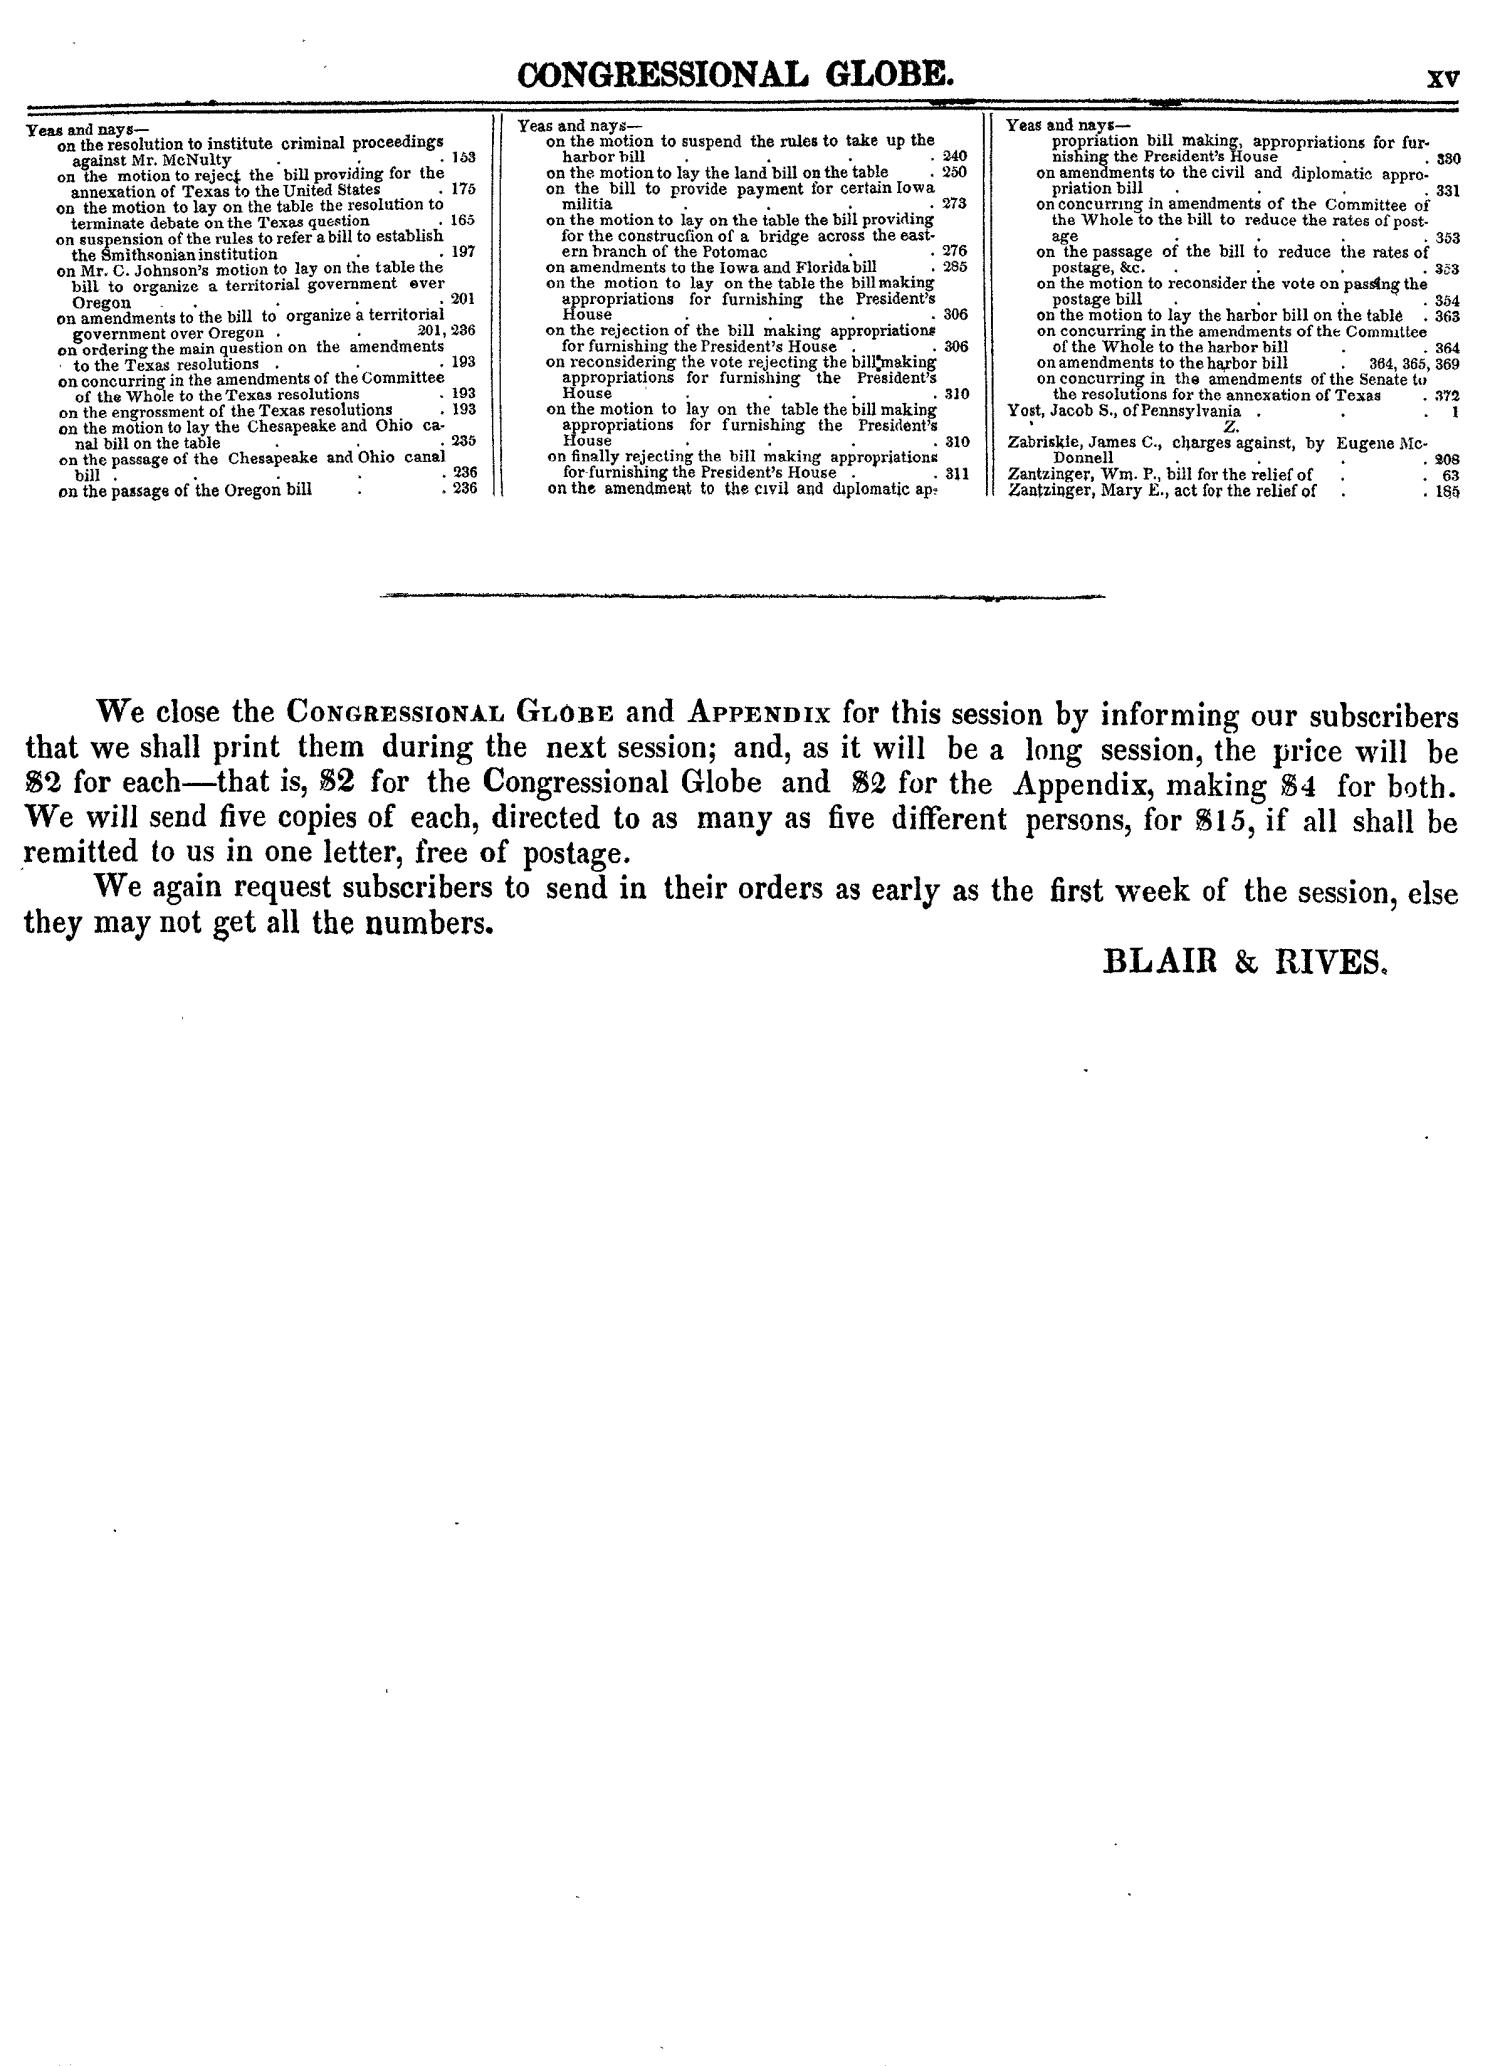 The Congressional Globe, Volume 14: Twenty-Eighth Congress, Second Session                                                                                                      XV